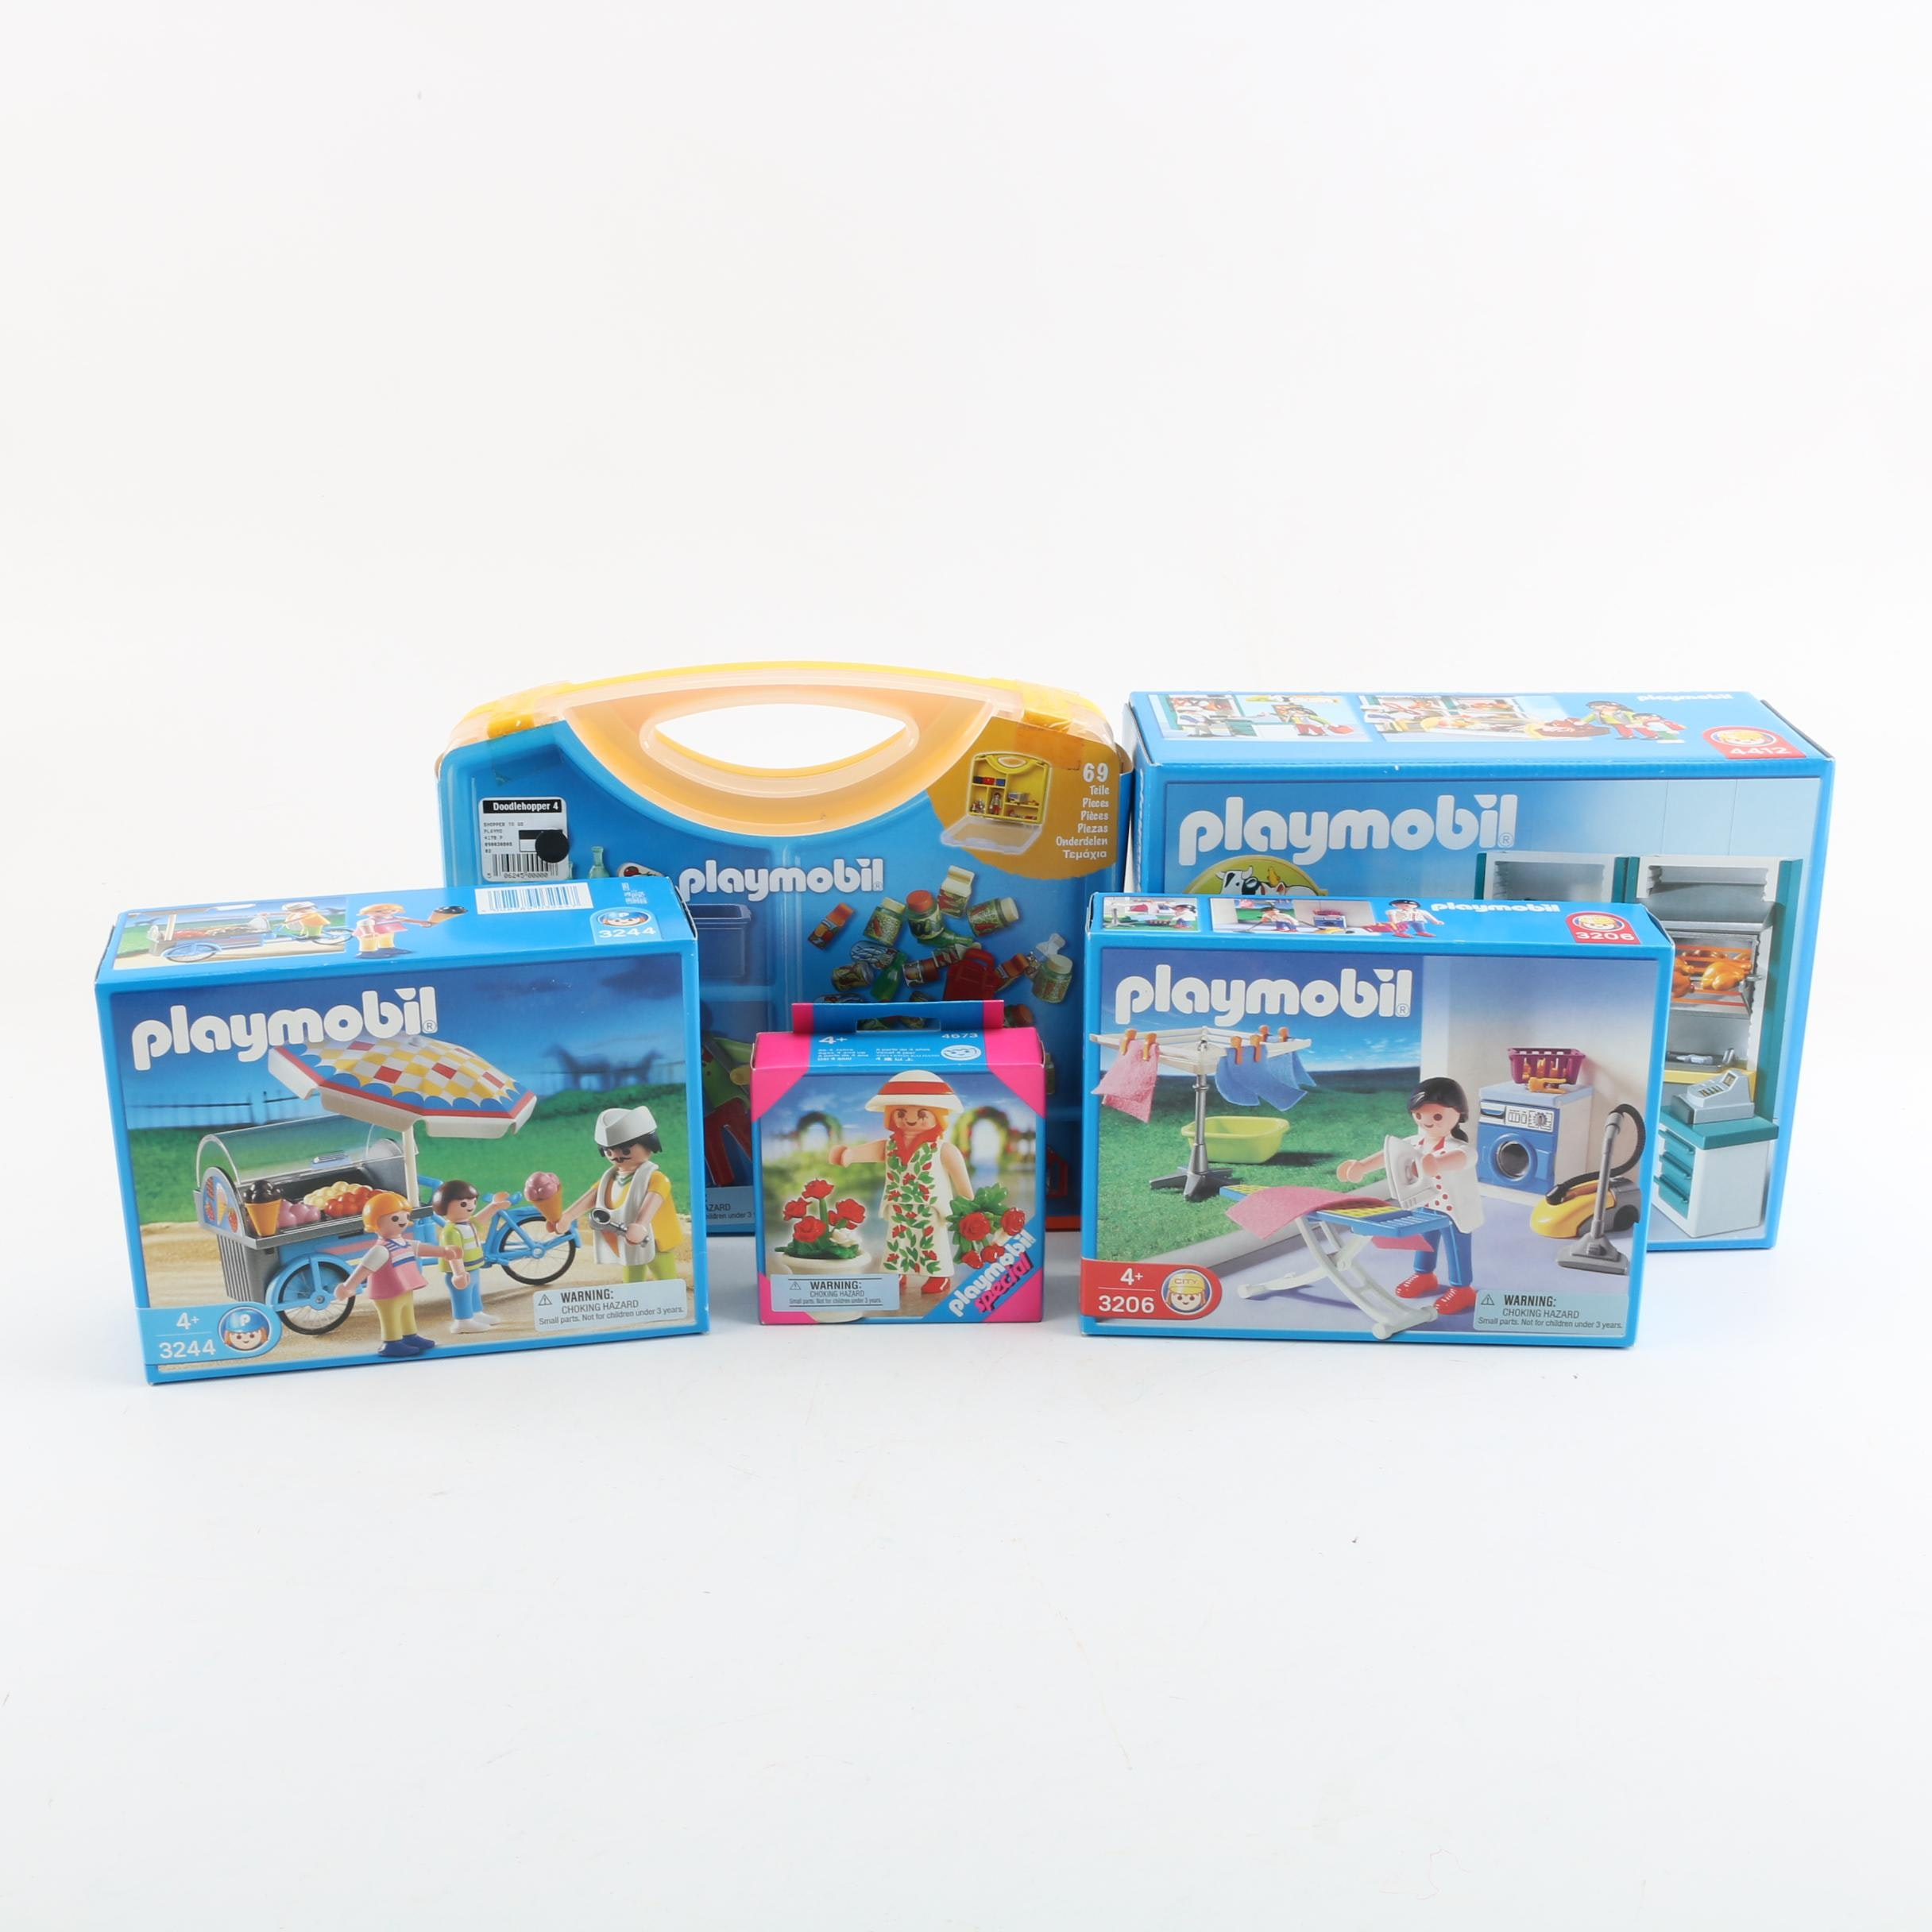 Playmobil Retail, Work and Shopping Play Sets